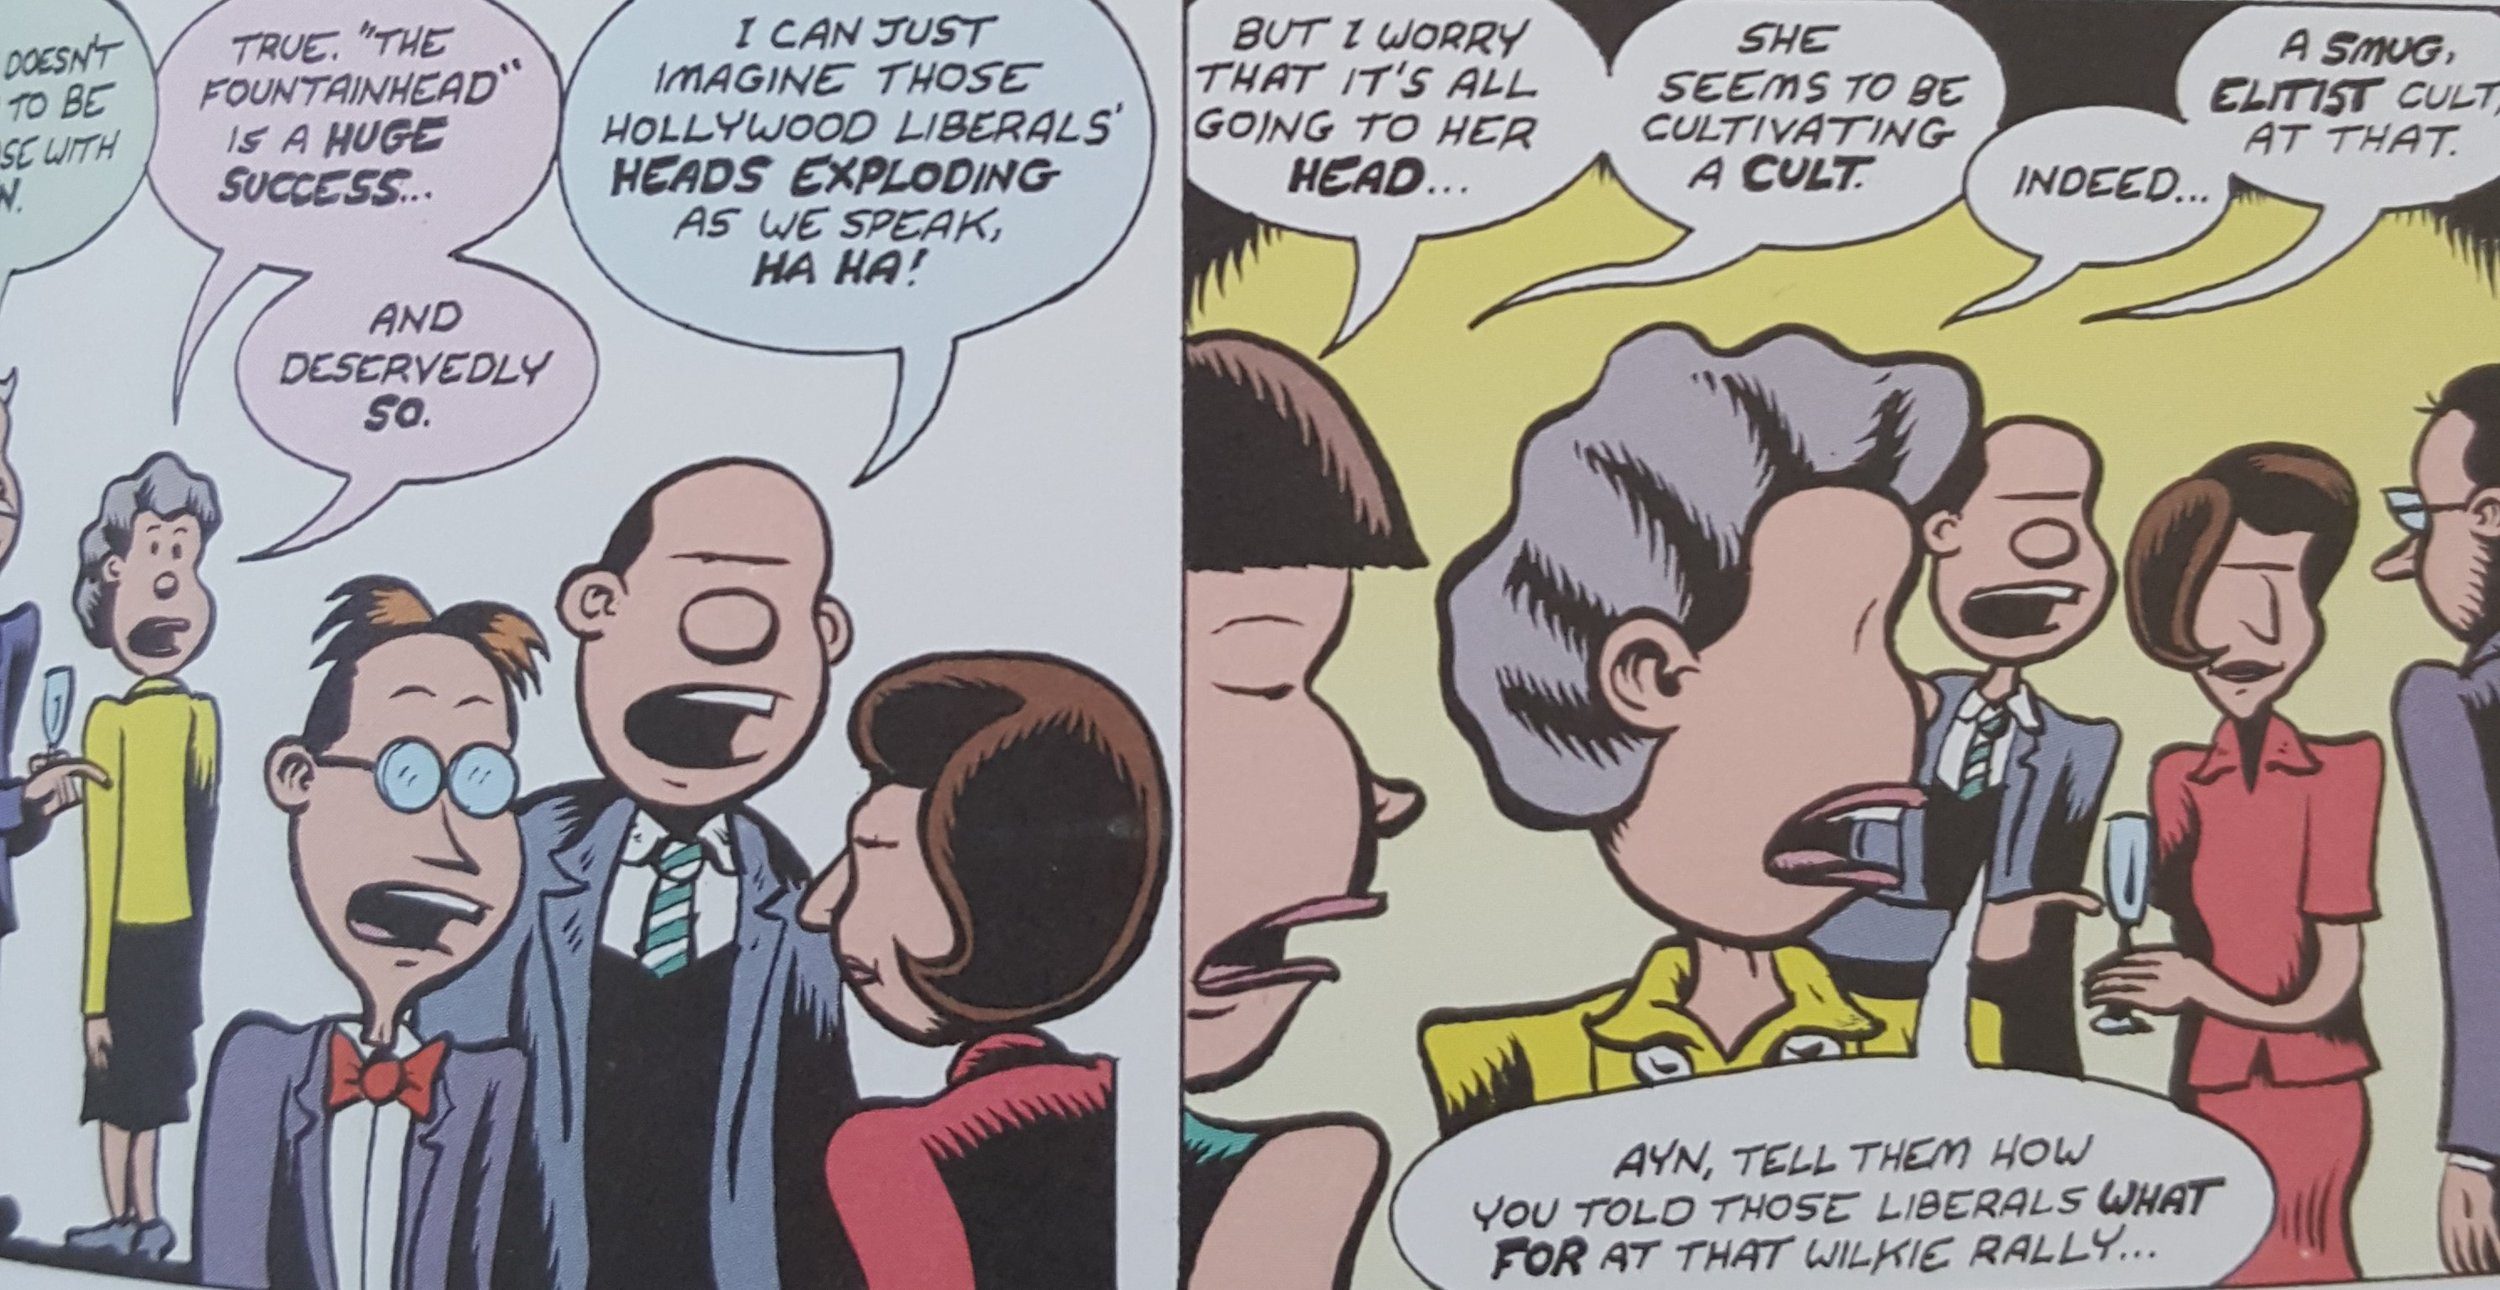 Credo: The Rose Wilder Lane Story (2019) p. 57, by Peter Bagge.